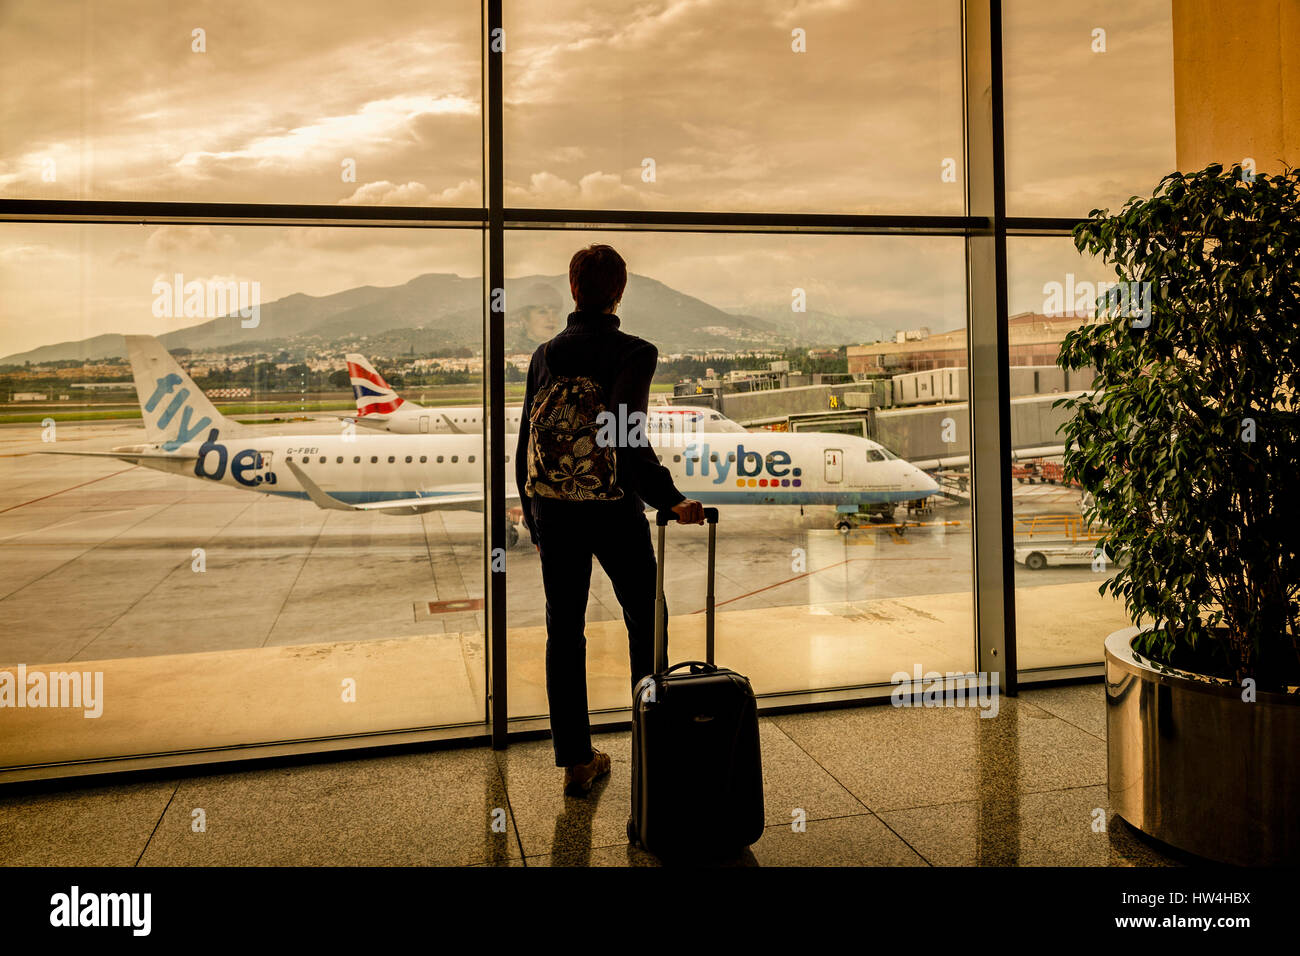 Tourist with luggage at Malaga airport. Costa del Sol, Malaga. Andalusia southern Spain. Europe Stock Photo